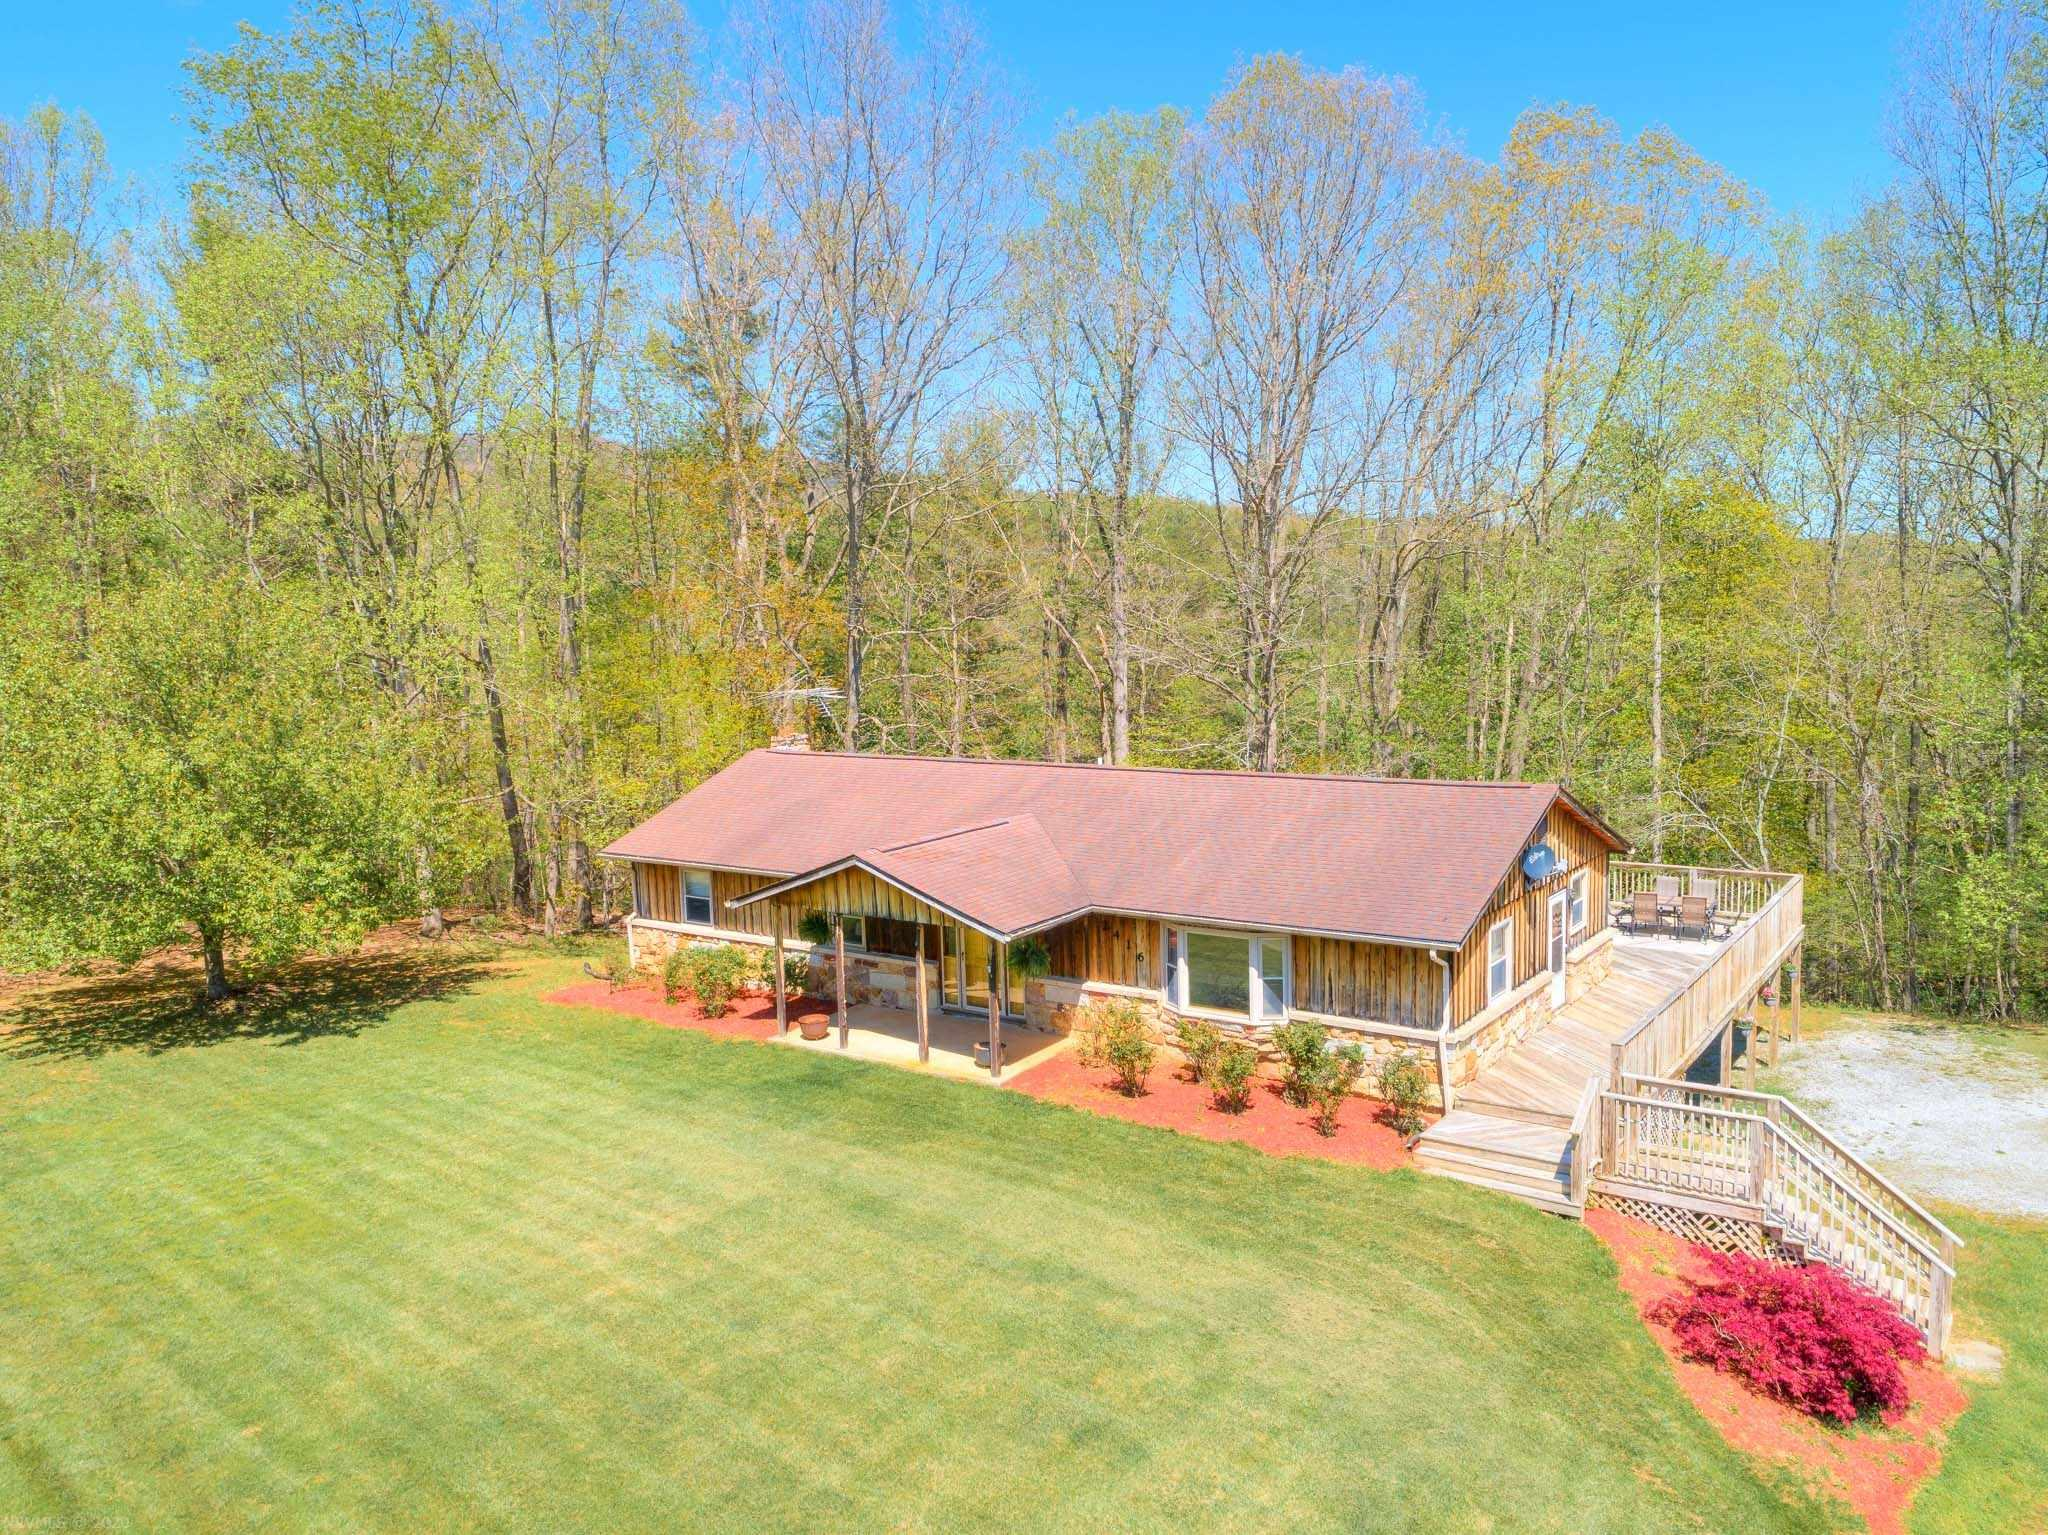 This private ranch home on over 2 acres of property is a peaceful rural retreat!  The rustic wood siding and wrap around porch, along with the beautifully maintained landscaping will catch your eye! Enter via the side door on the wrap around deck right into the kitchen. All stainless appliances, lots of counter and cabinet space. Full sized dining room with a large bay window flows right into the cozy, custom paneled living room, makes entertaining easy! The large family room/rec room on this level, also beautifully paneled, and opens onto the deck. Three carpeted bedrooms, with roomy full baths in both the hall and Master Bedroom. Master has a cedar lined wall sized closet. The basement includes the one car garage; the rest is partitioned into a partially finished rec area, laundry and utility area. Head outside for an adventure in bordering Tom's Creek, and fishing fans will want to find the trout that are released just below this property. A country living must see!